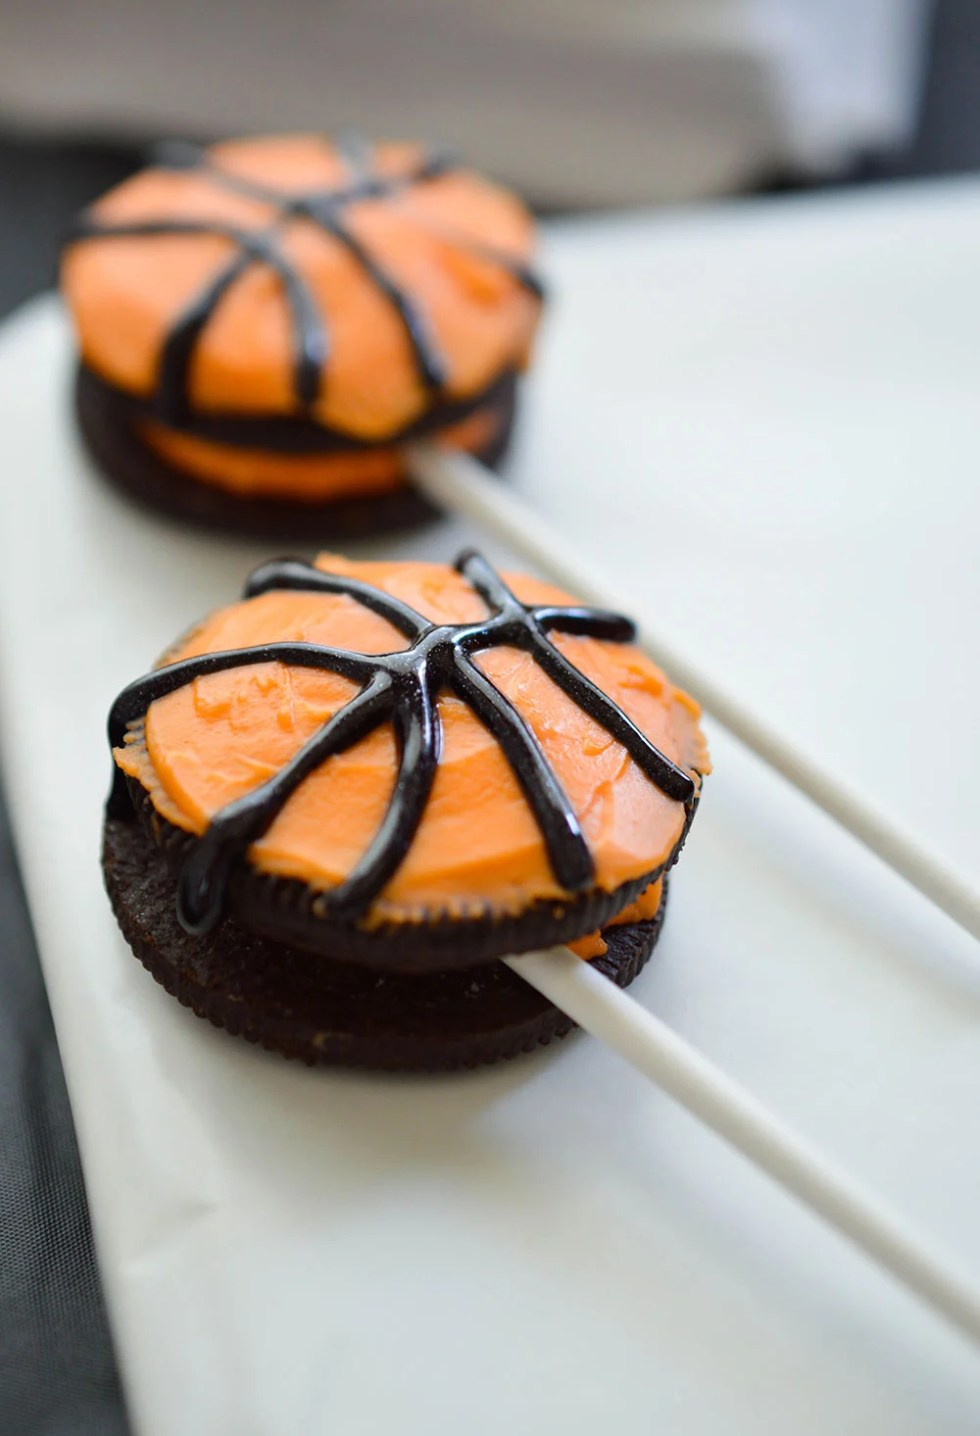 Basketball Party Ideas for your B-ball themed celebration. Cheer on your favorite team while enjoying this Basketball decor and fun desserts! Party planning can be easy with Peanut Butter Cup Brownies, OREO Truffles and OREO Pops!